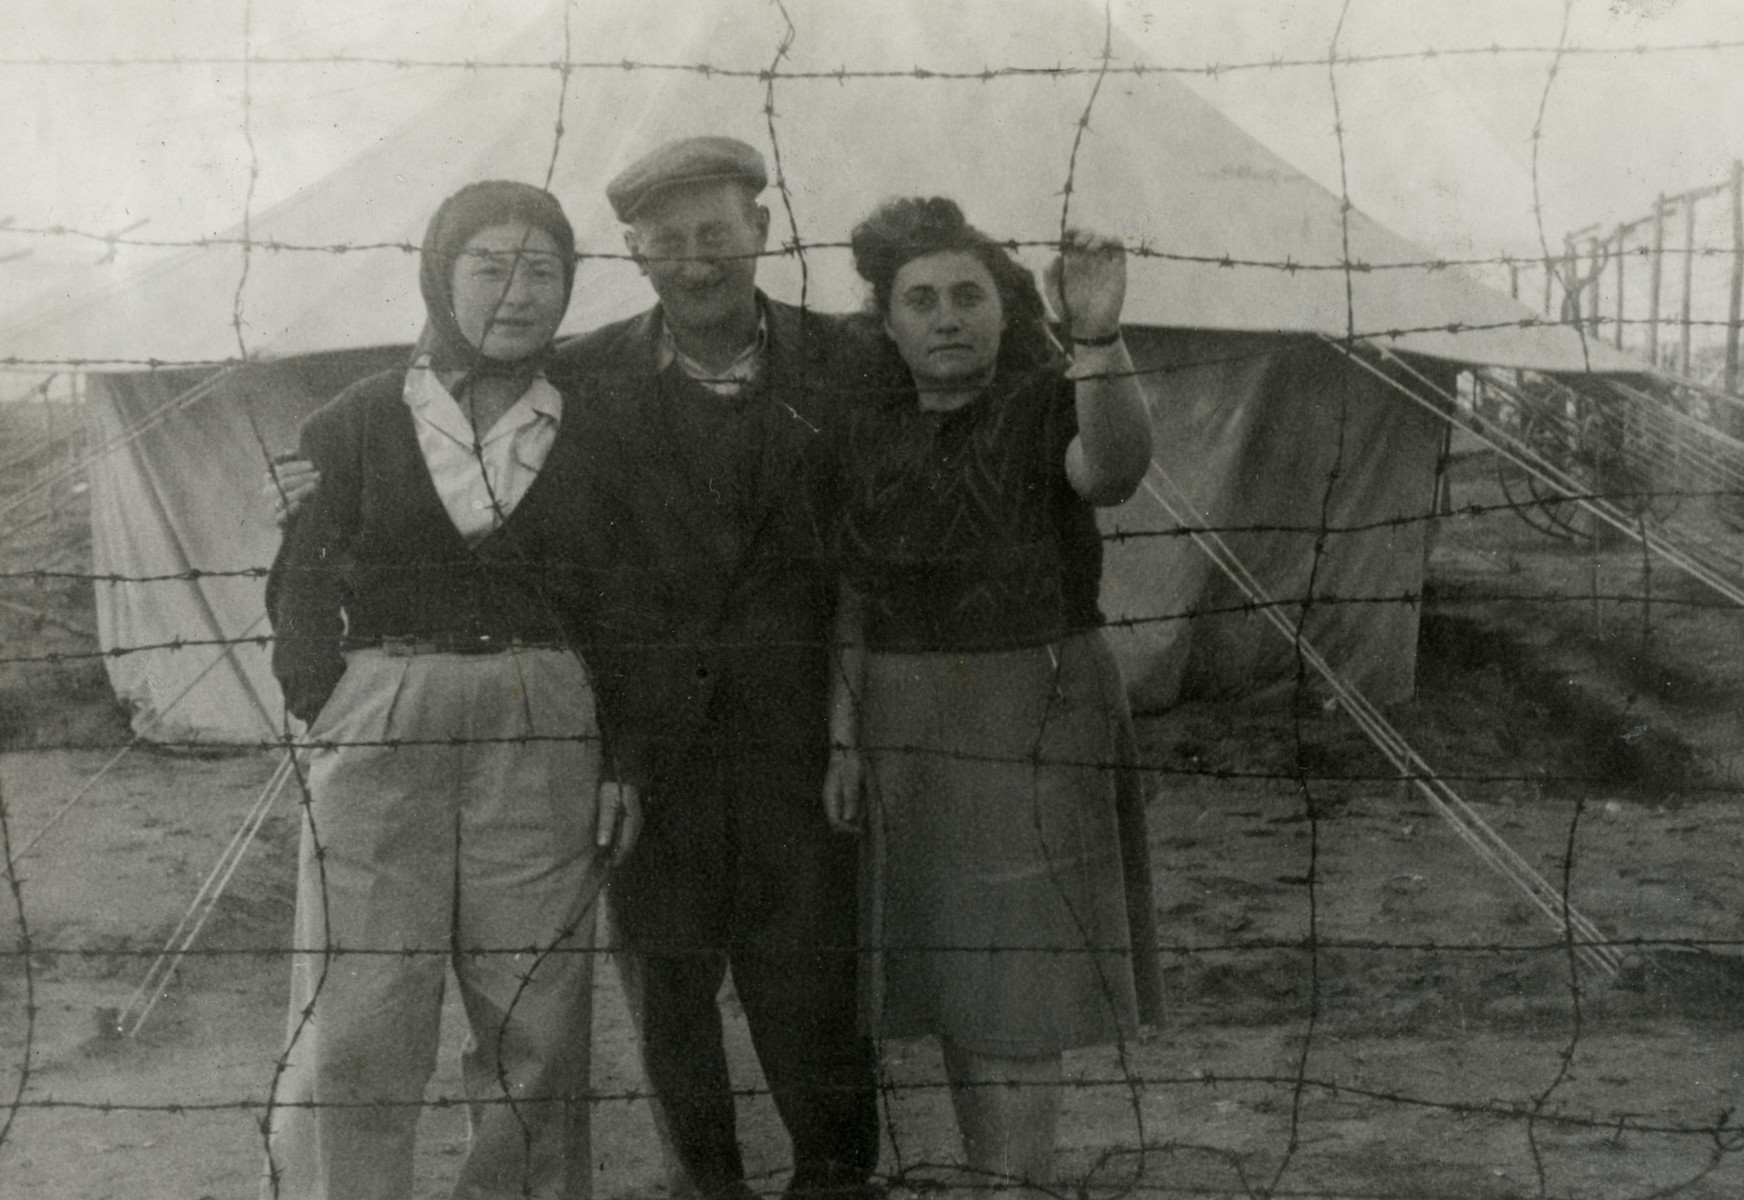 Three refugees in Cyprus who were refused entry into Palestine look out through the barbed wire fence.